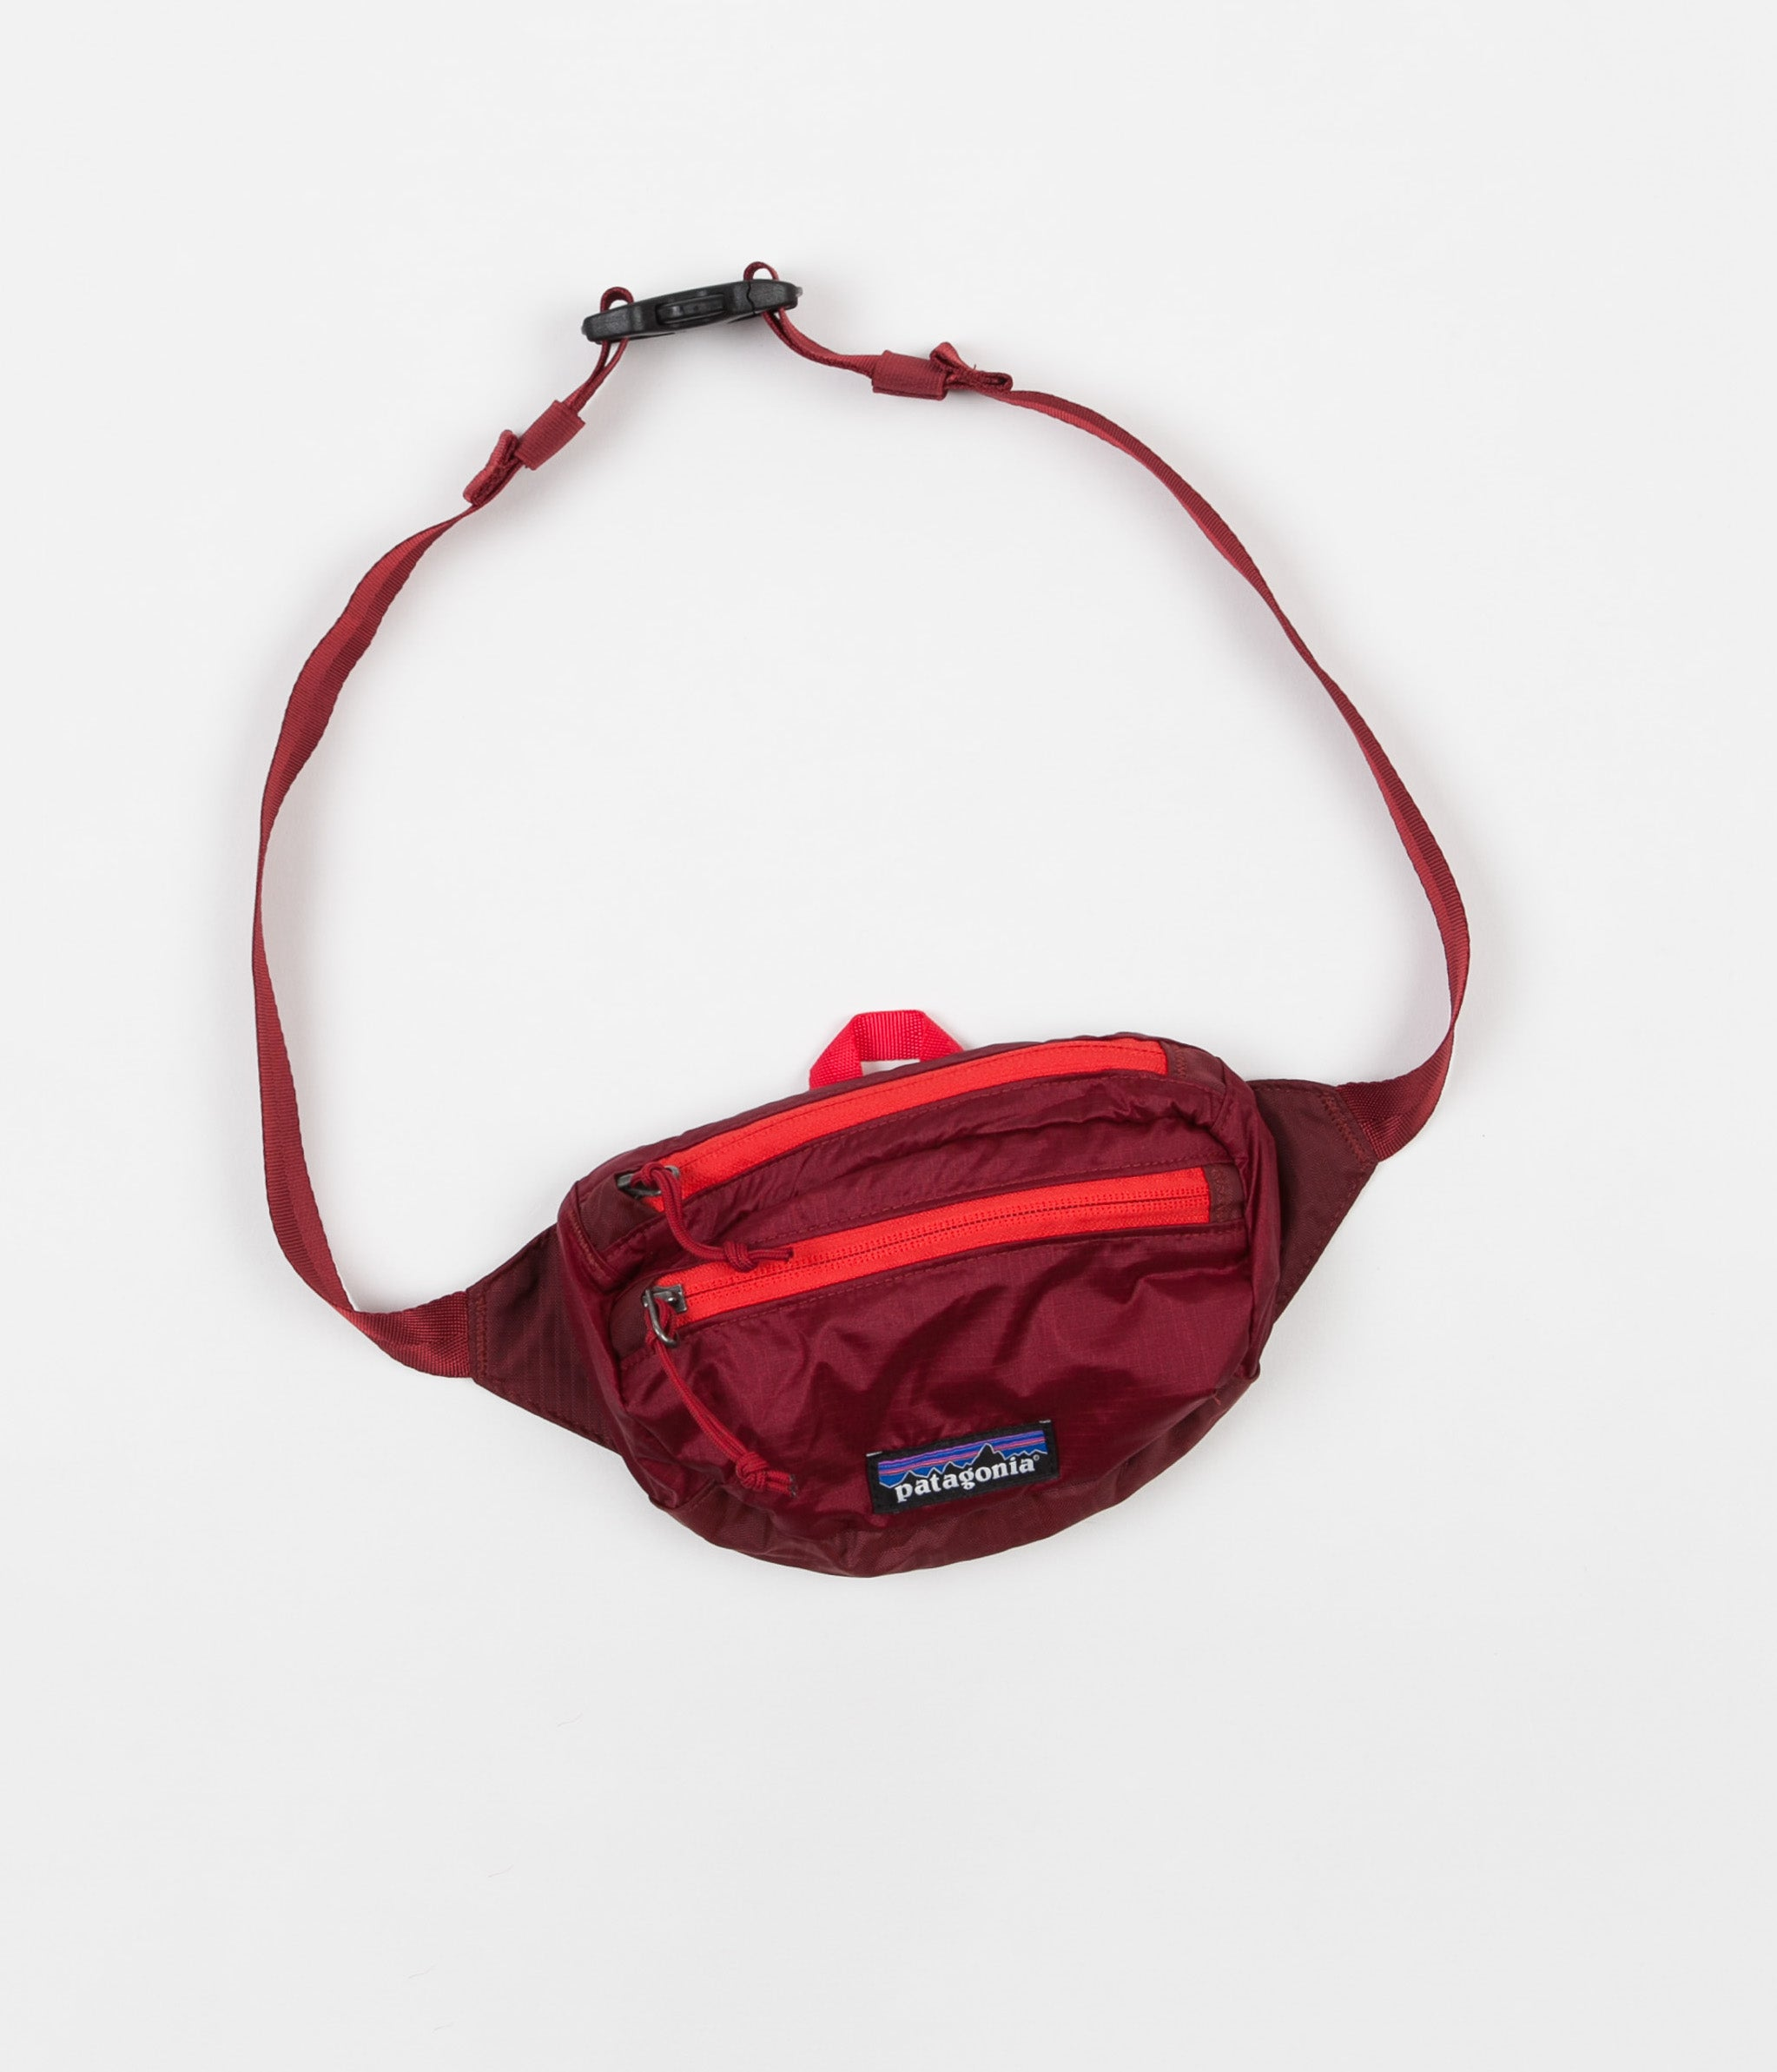 de01a030317 Patagonia Lightweight Travel Mini Hip Pack - Oxide Red